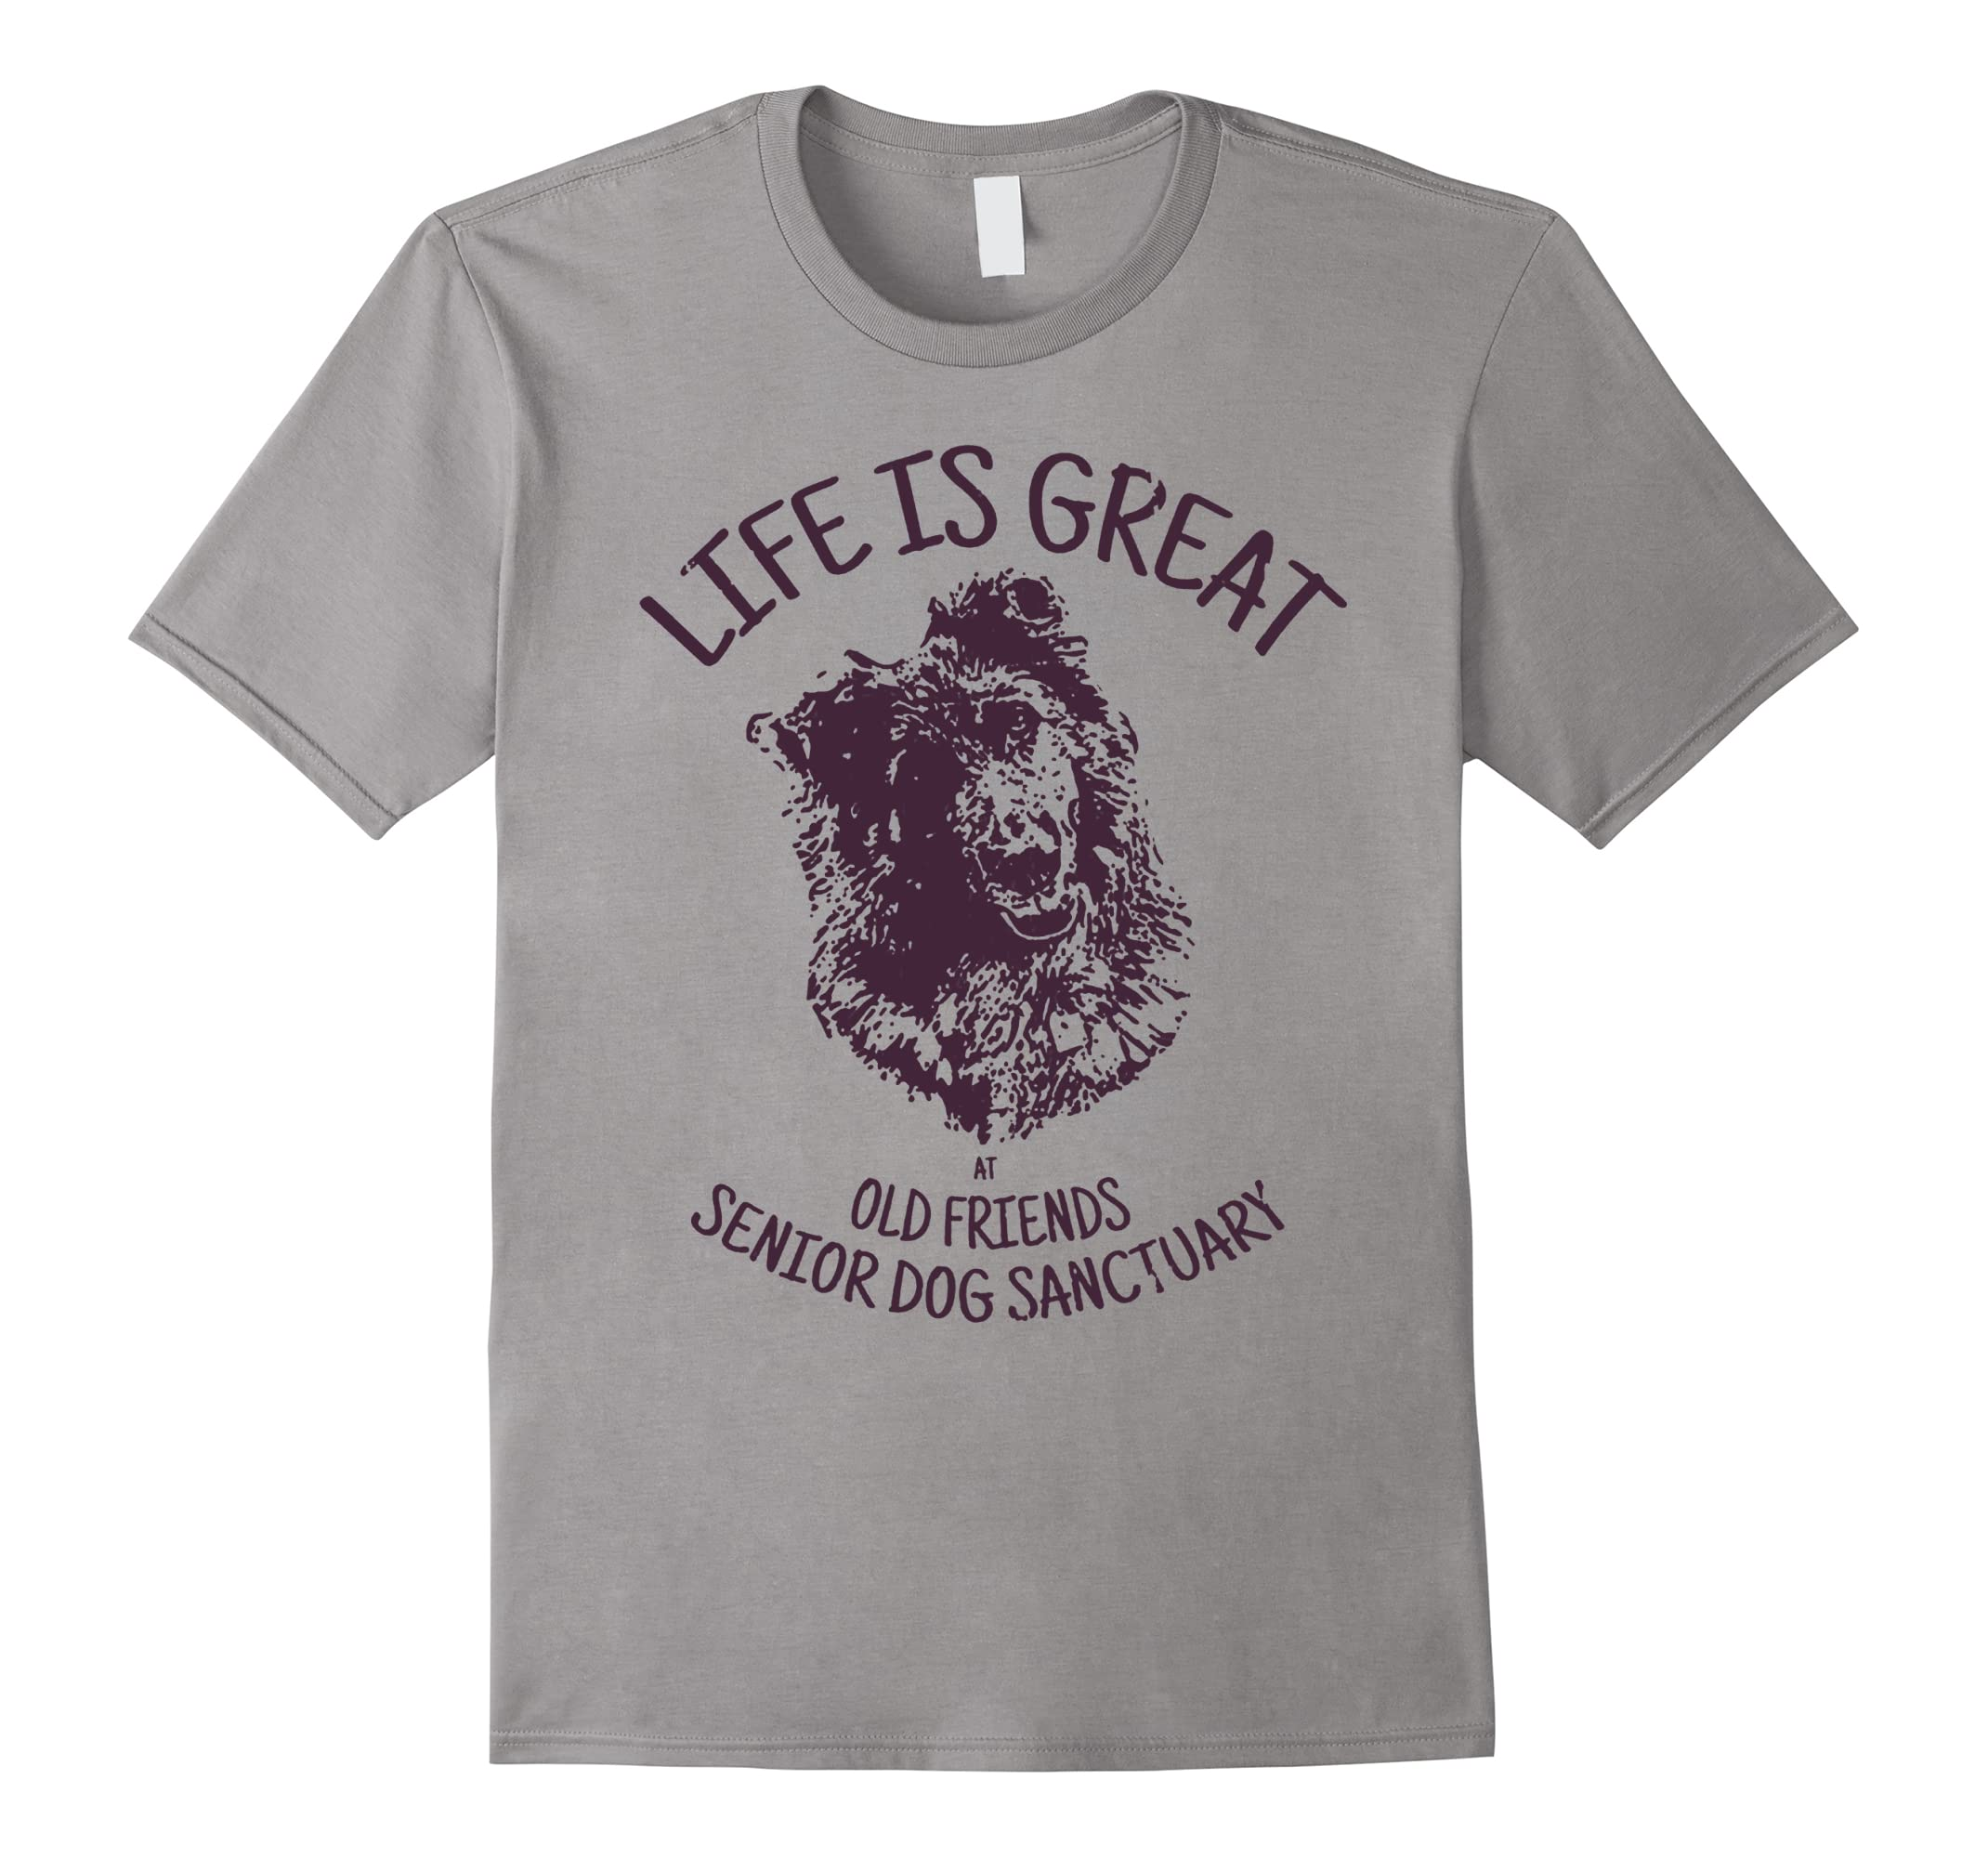 Old Friends Senior Dog Sanctuary Shirt